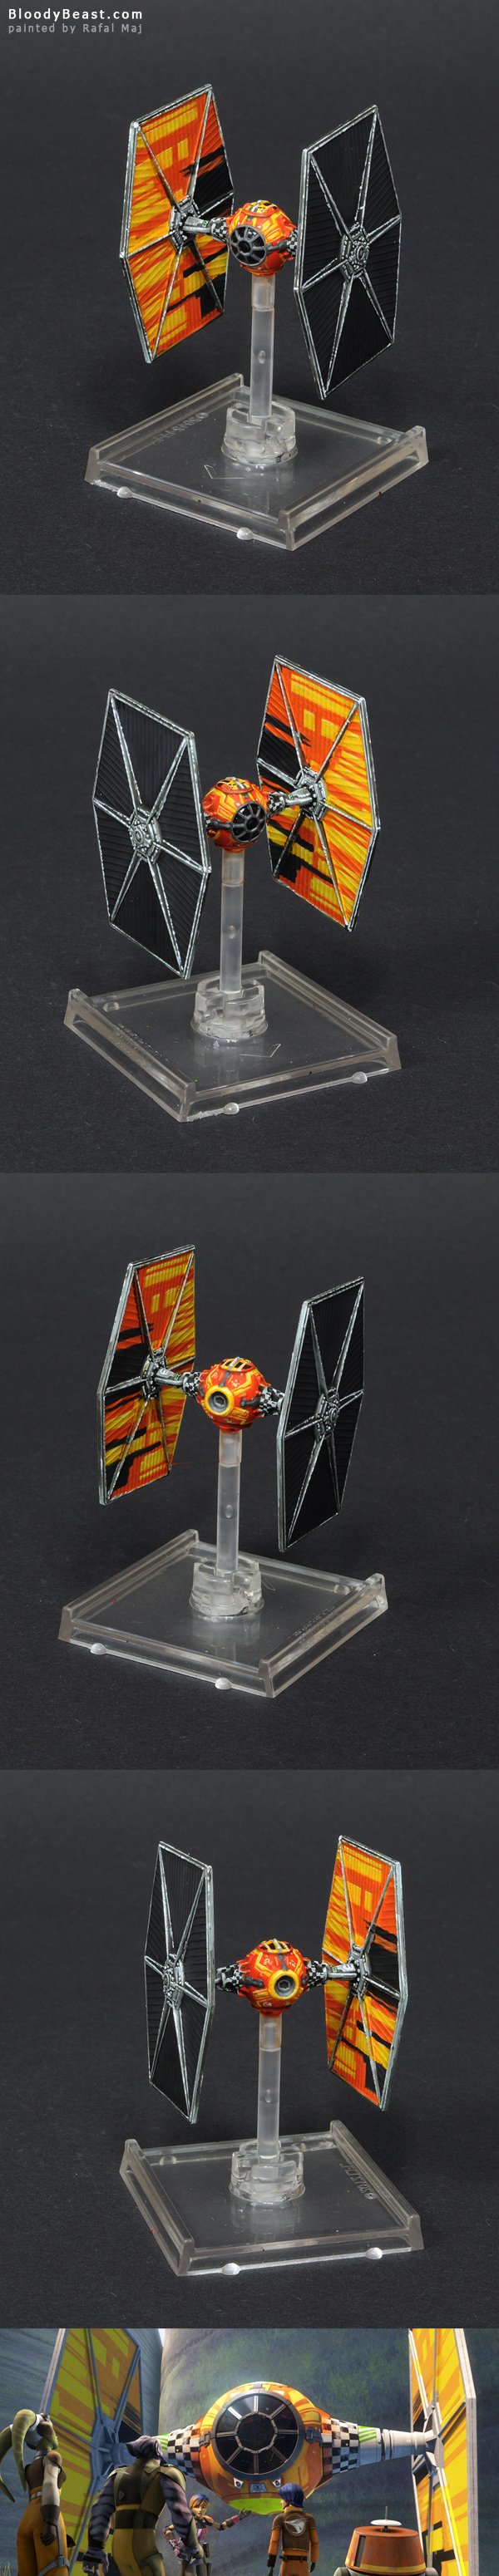 Star Wars X-Wing Tie Fighter